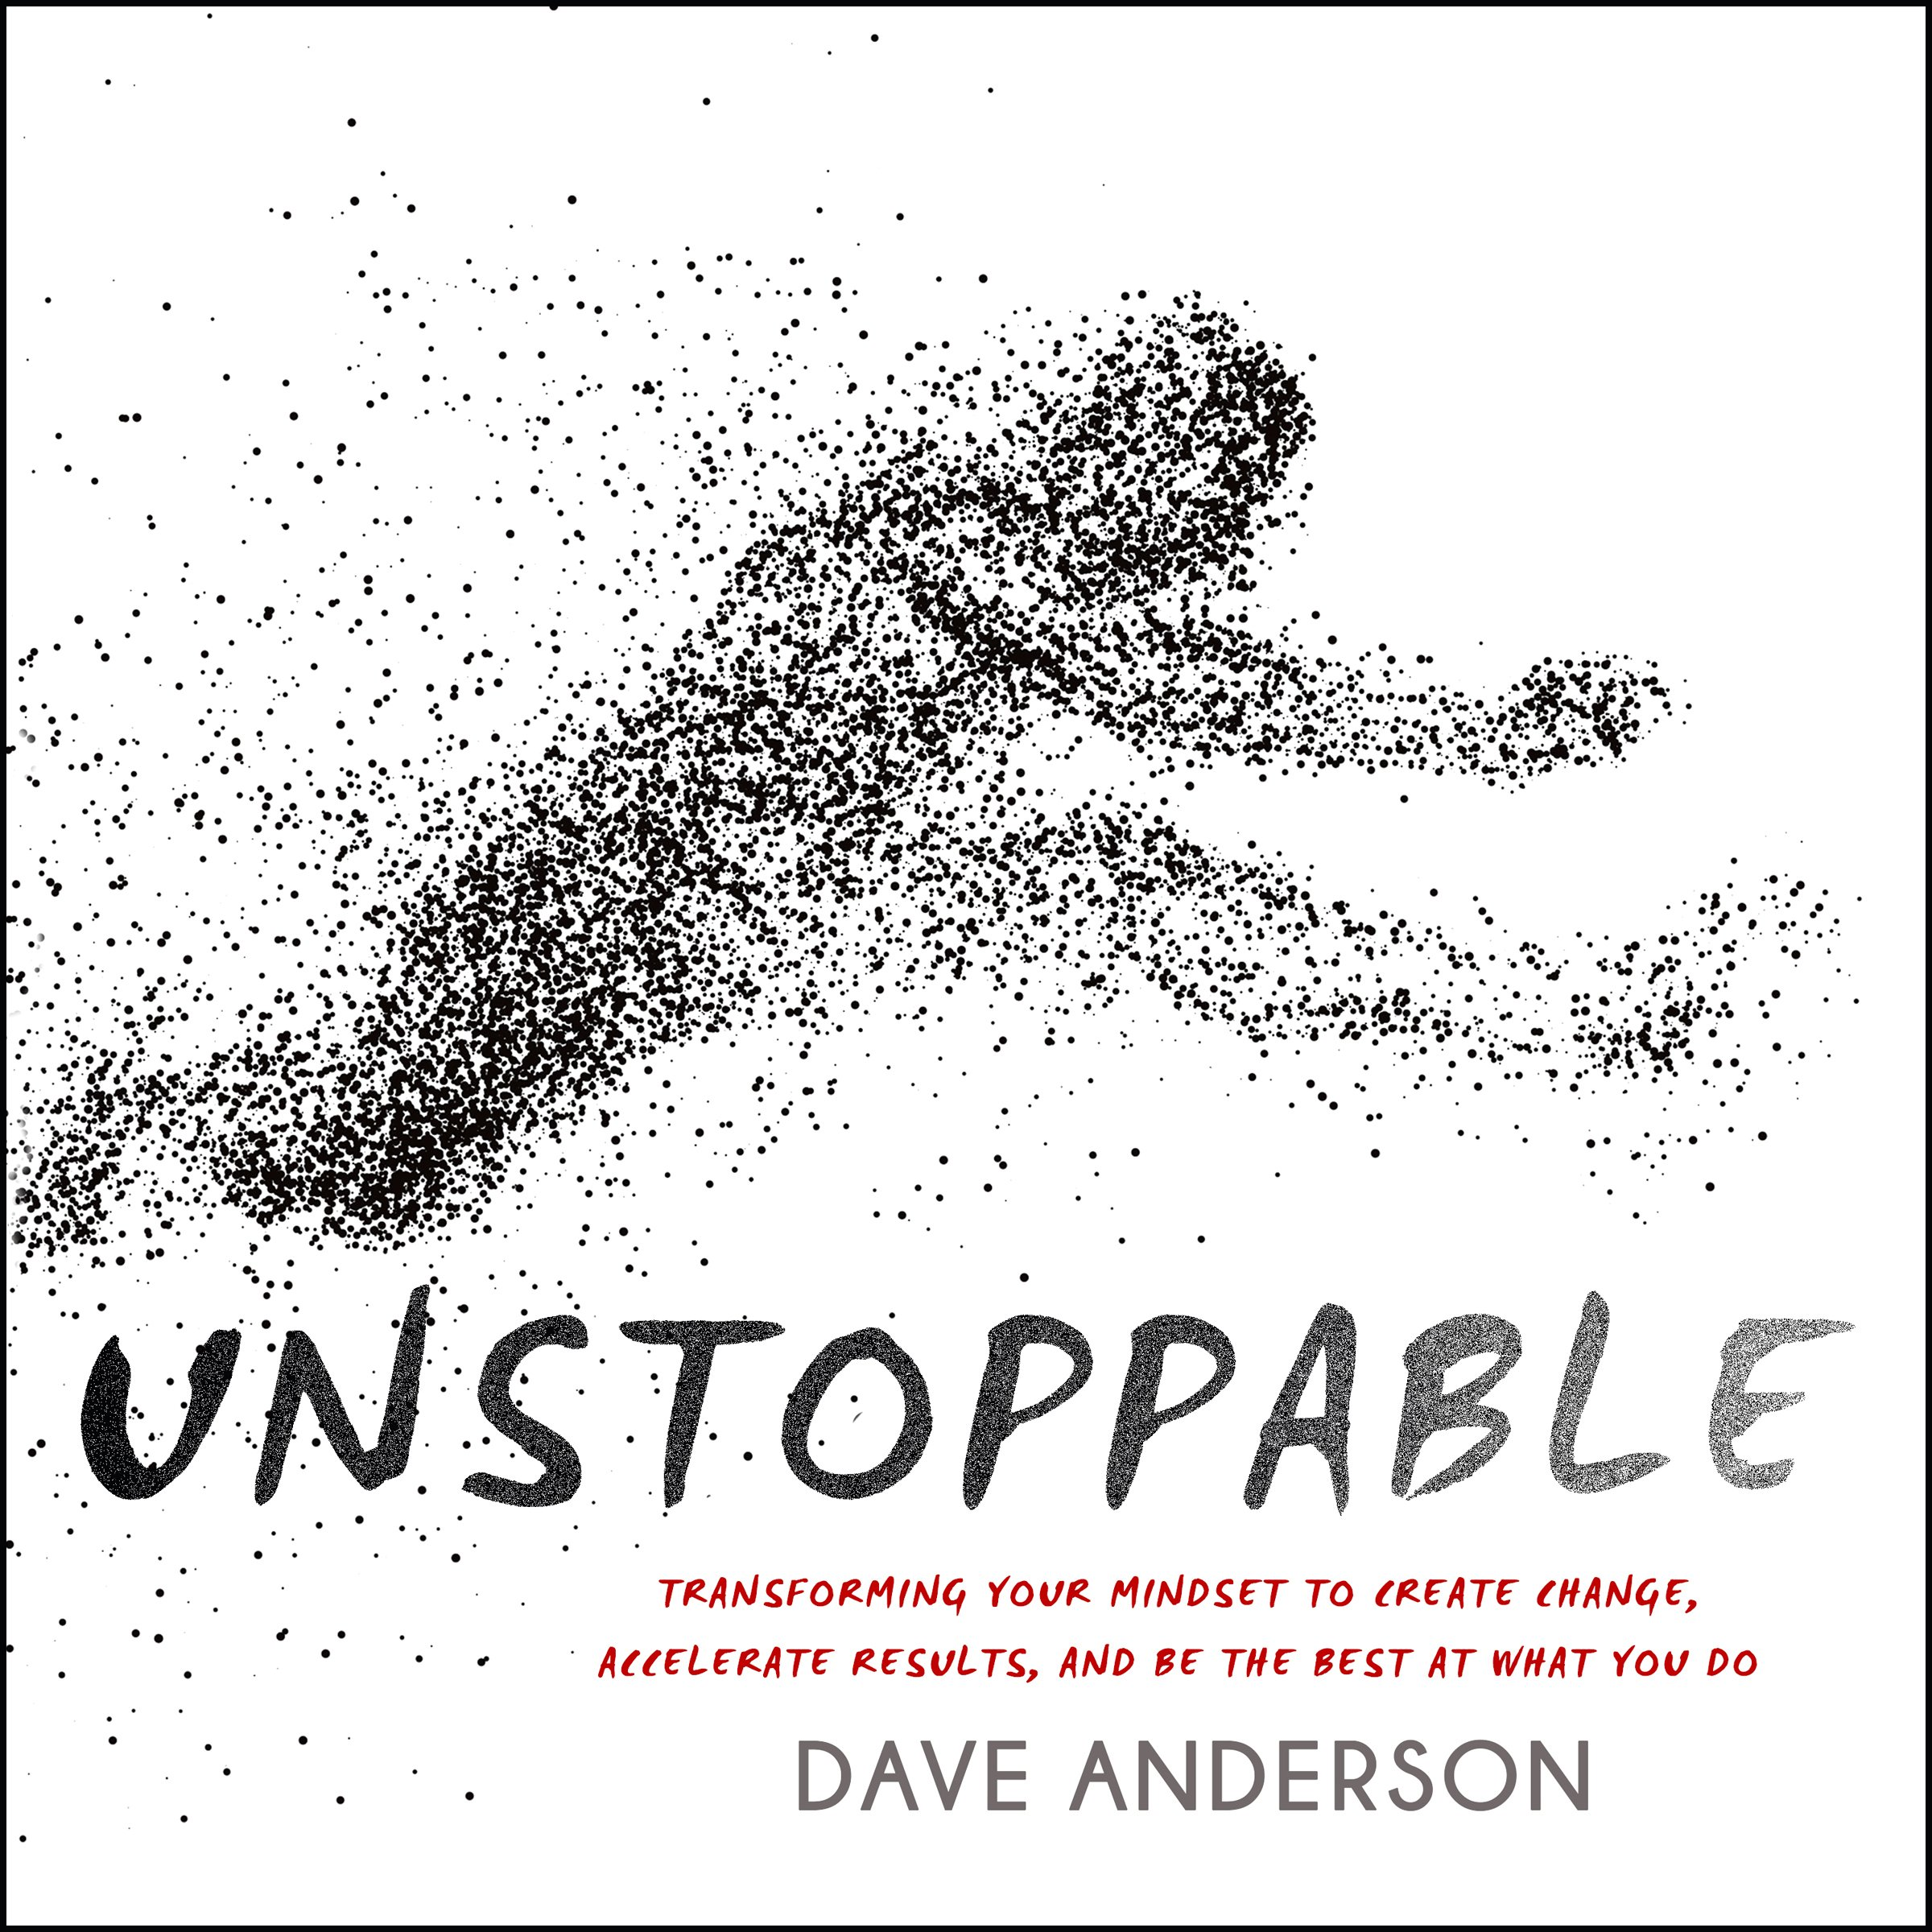 Unstoppable: Transforming Your Mindset to Create Change, Accelerate Results, and Be the Best at What You Do